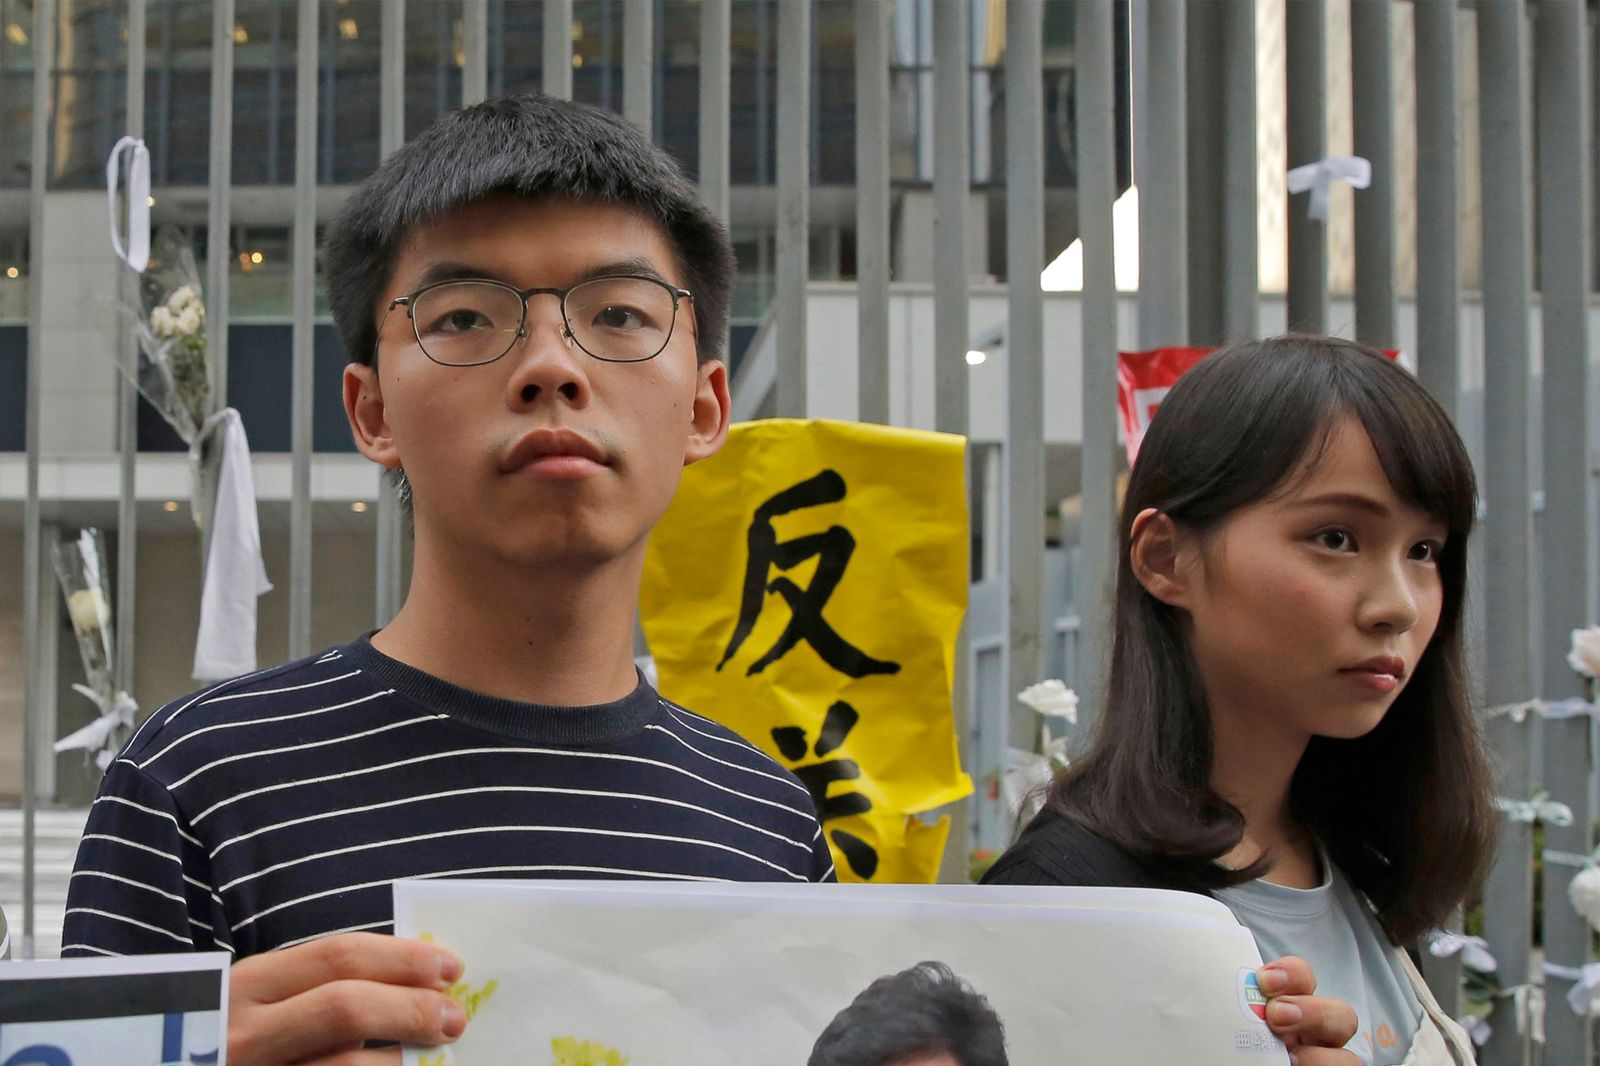 FILE - In this June 18, 2019, file photo, pro-democracy activists Agnes Chow, right, and Joshua Wong speak to the media outside government office in Hong Kong. (AP Photo/Kin Cheung, File)